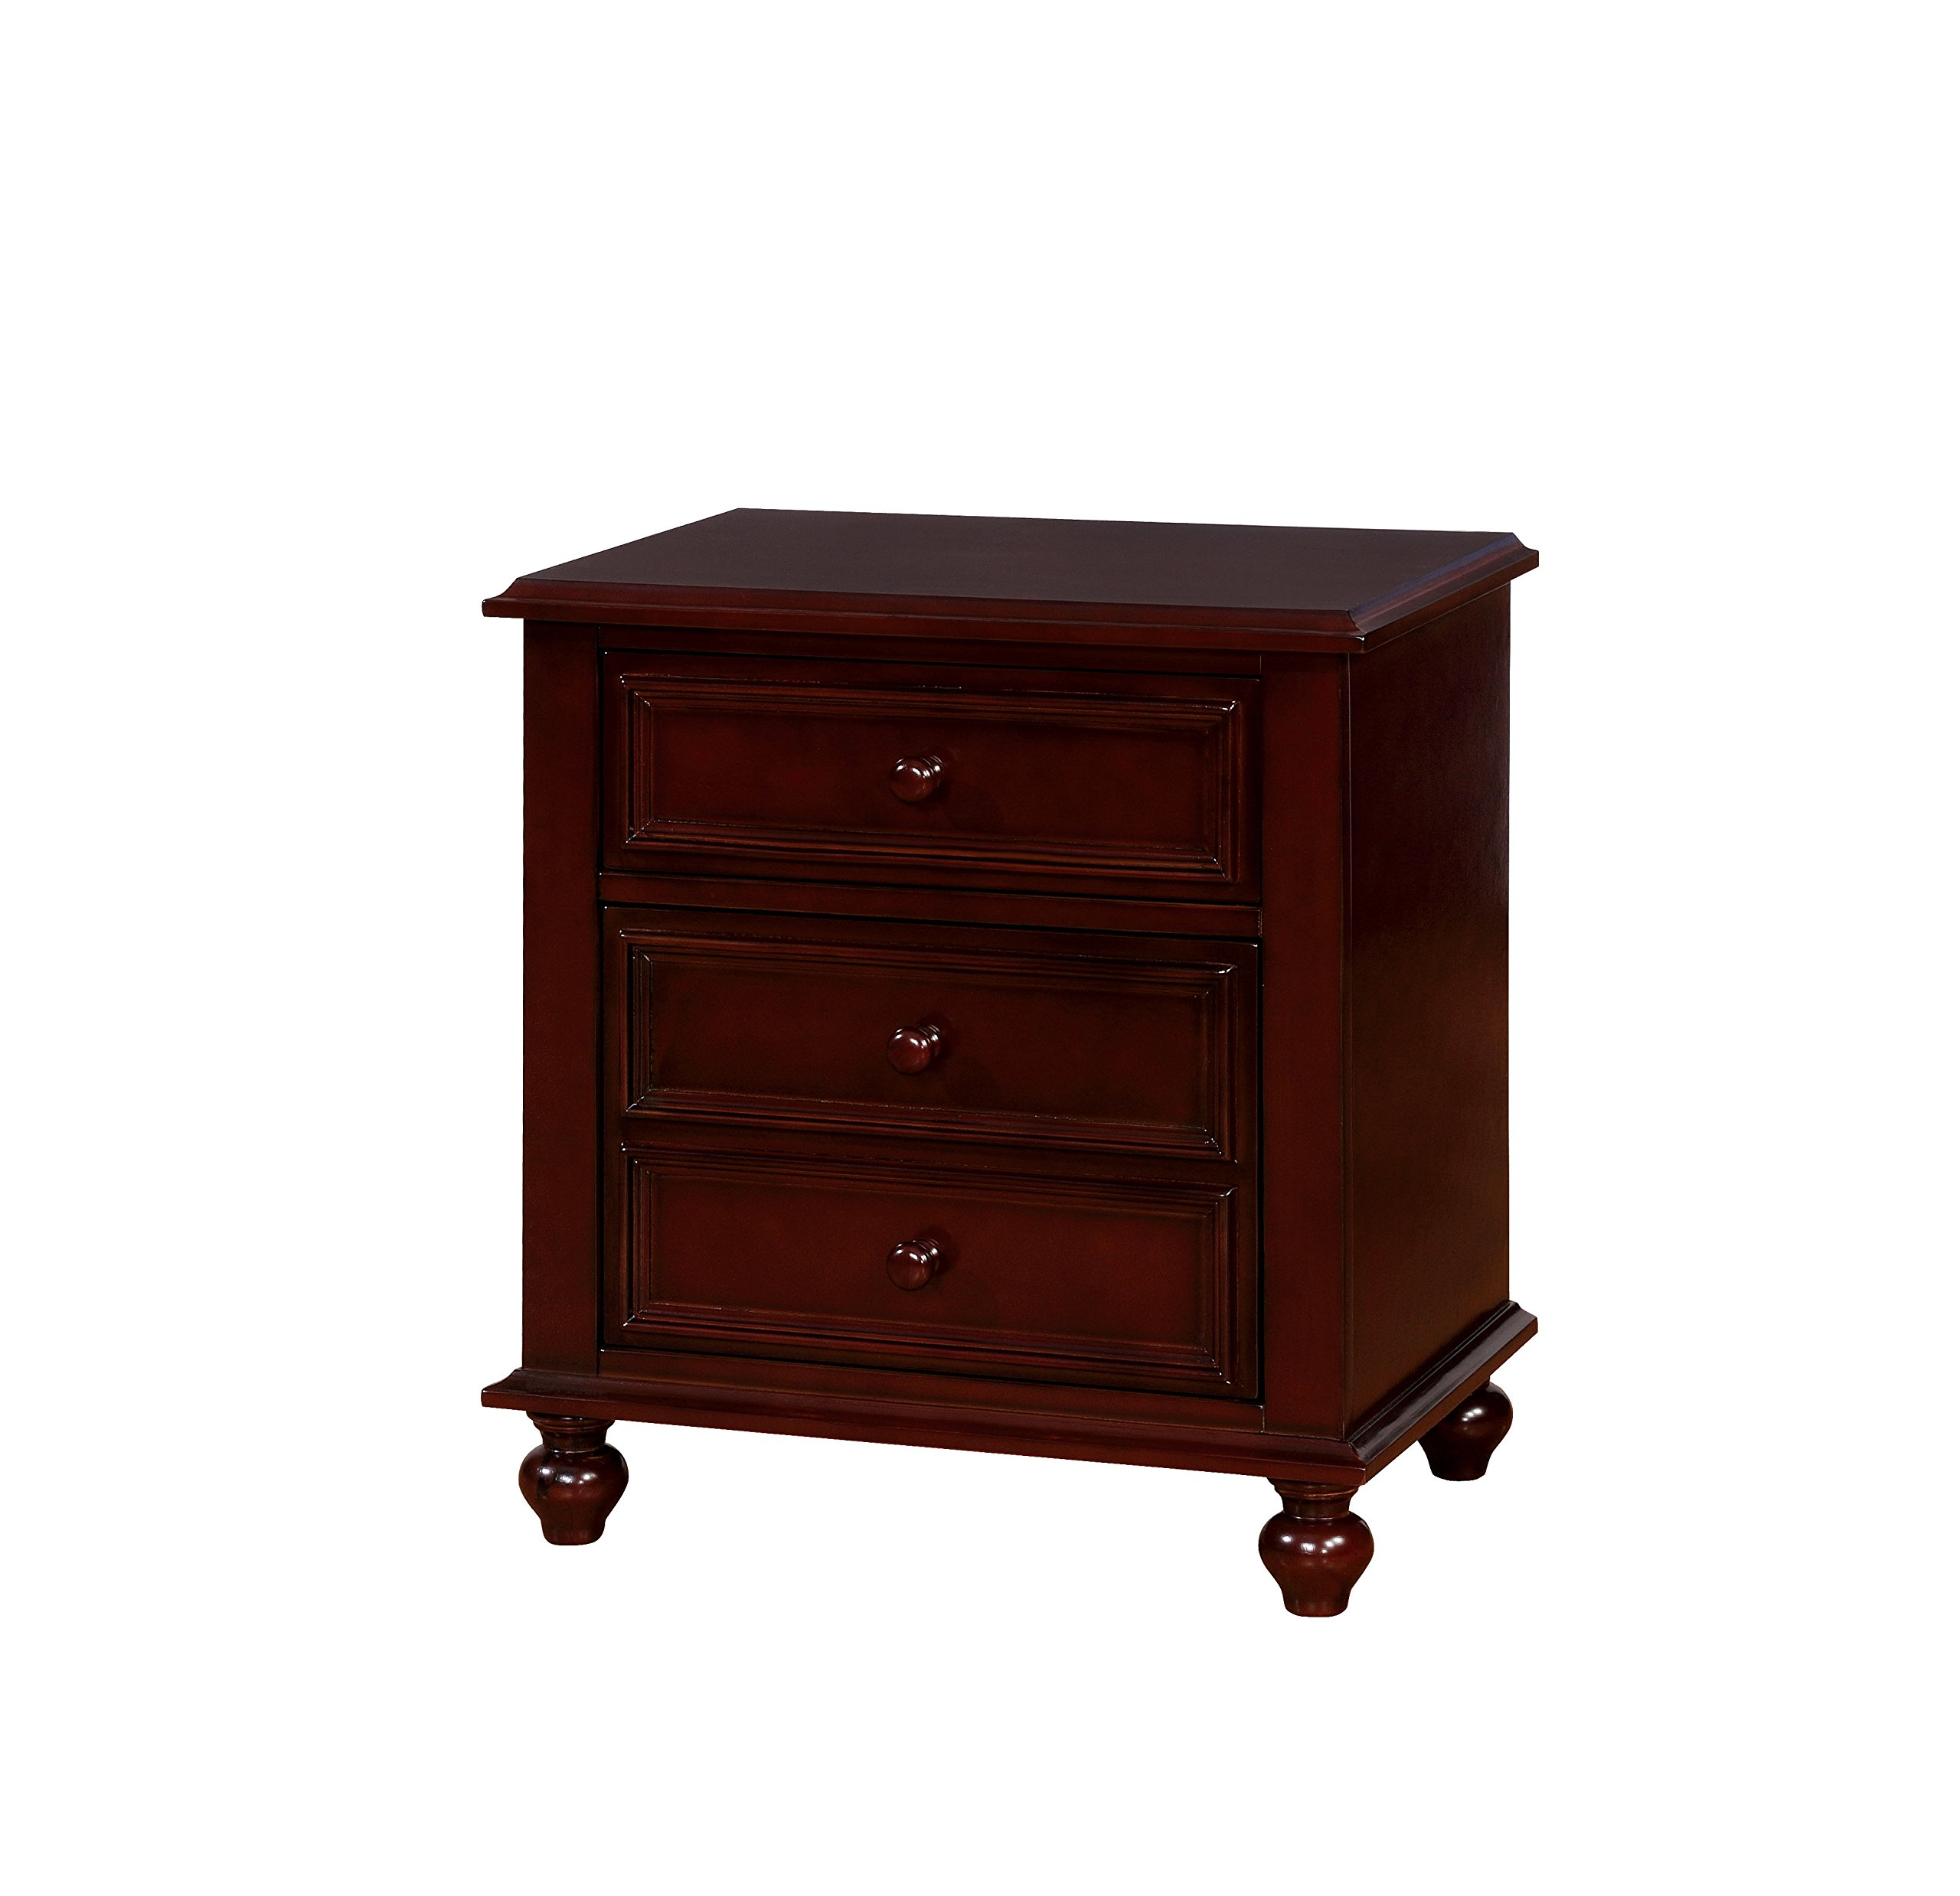 HOMES: Inside + Out IDF-7155EX-N Colderon Nightstand Childrens, Dark Walnut